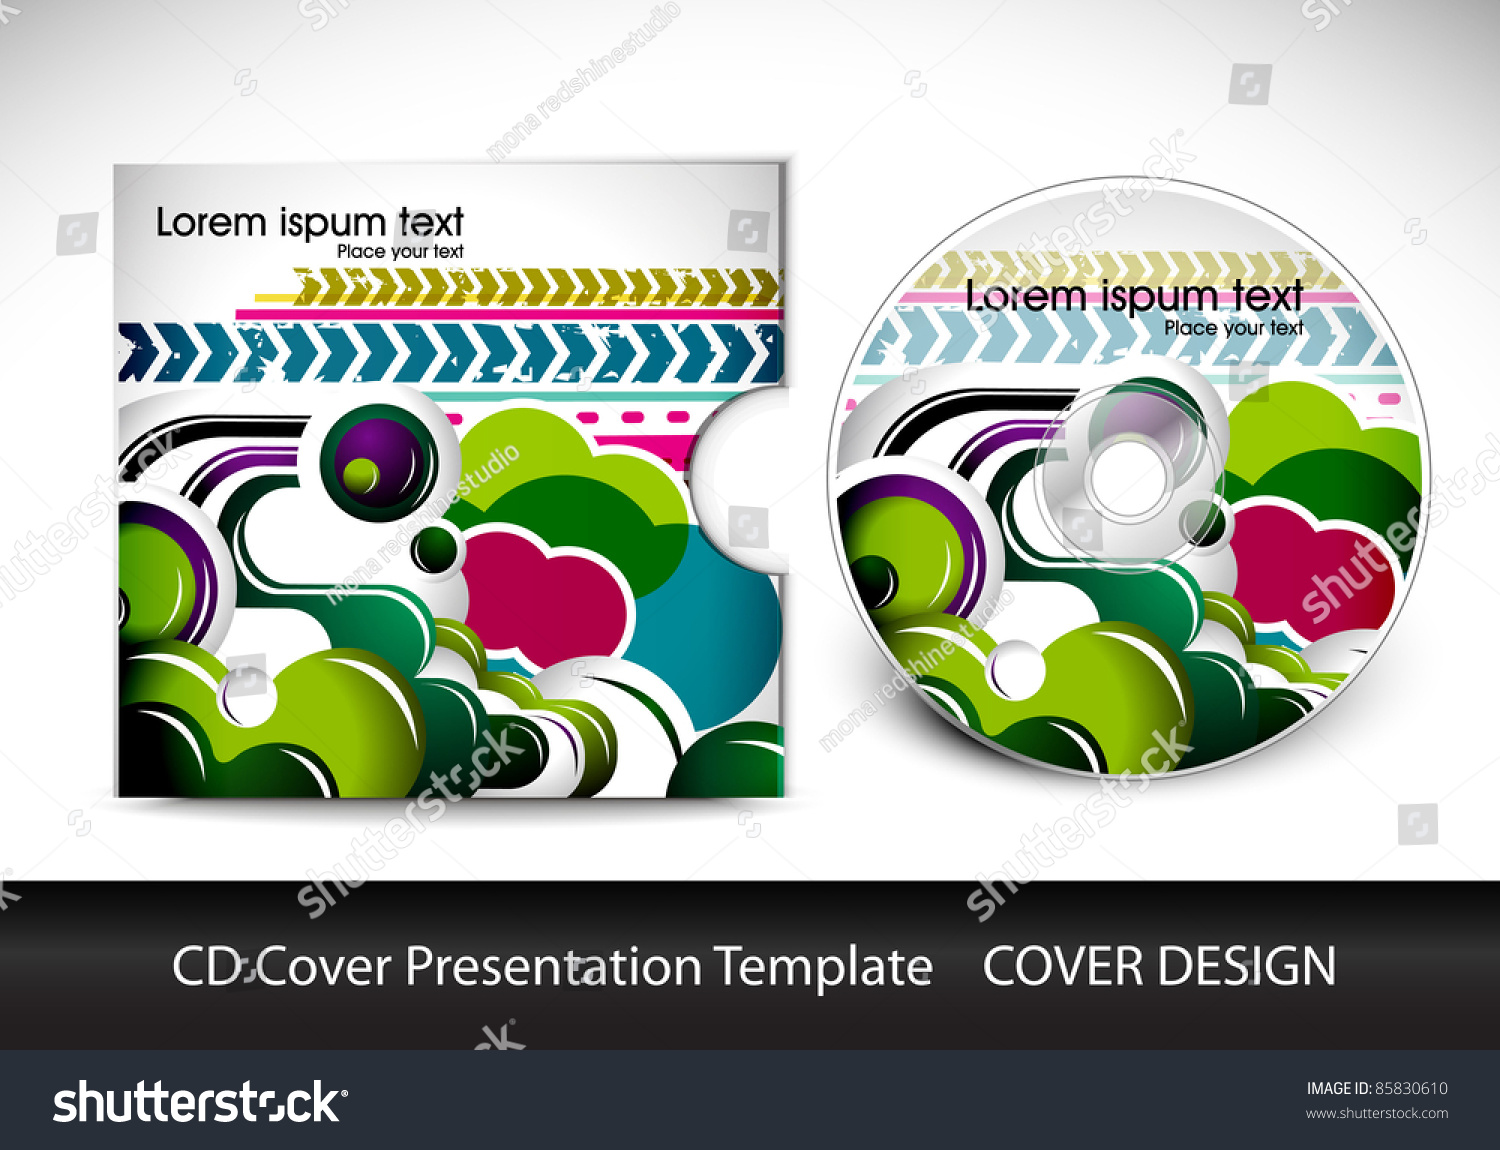 cd cover presentation design template editable stock vector 85830610 shutterstock. Black Bedroom Furniture Sets. Home Design Ideas